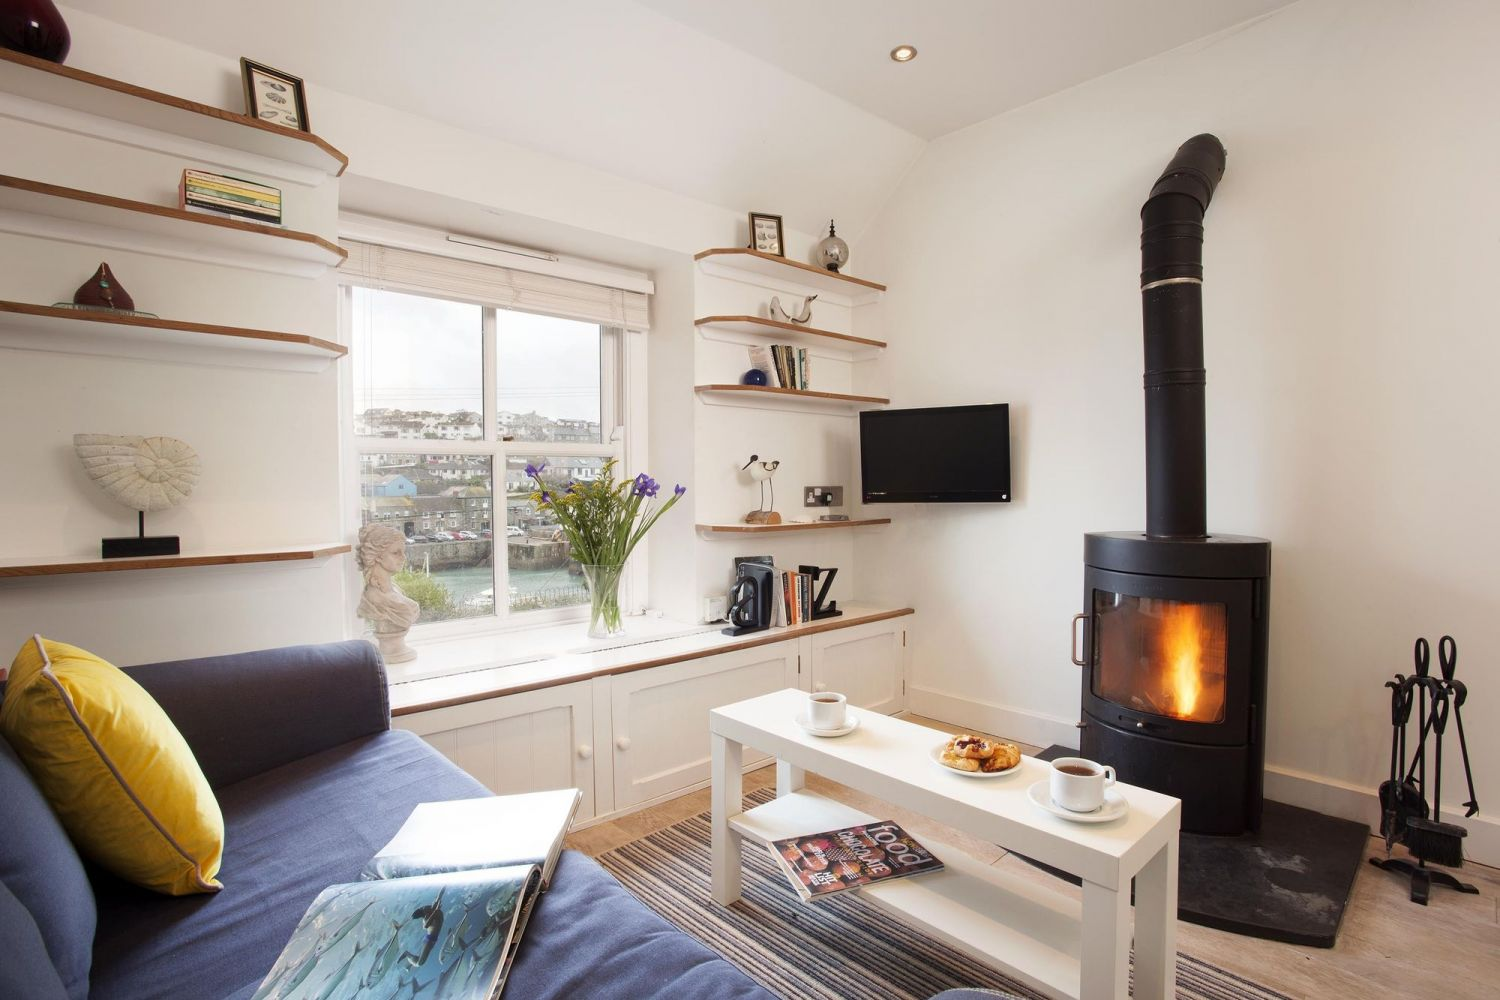 Harbour View Cottage - Porthleven Holiday Cottages View Cottage - Porthleven Holiday Cottages